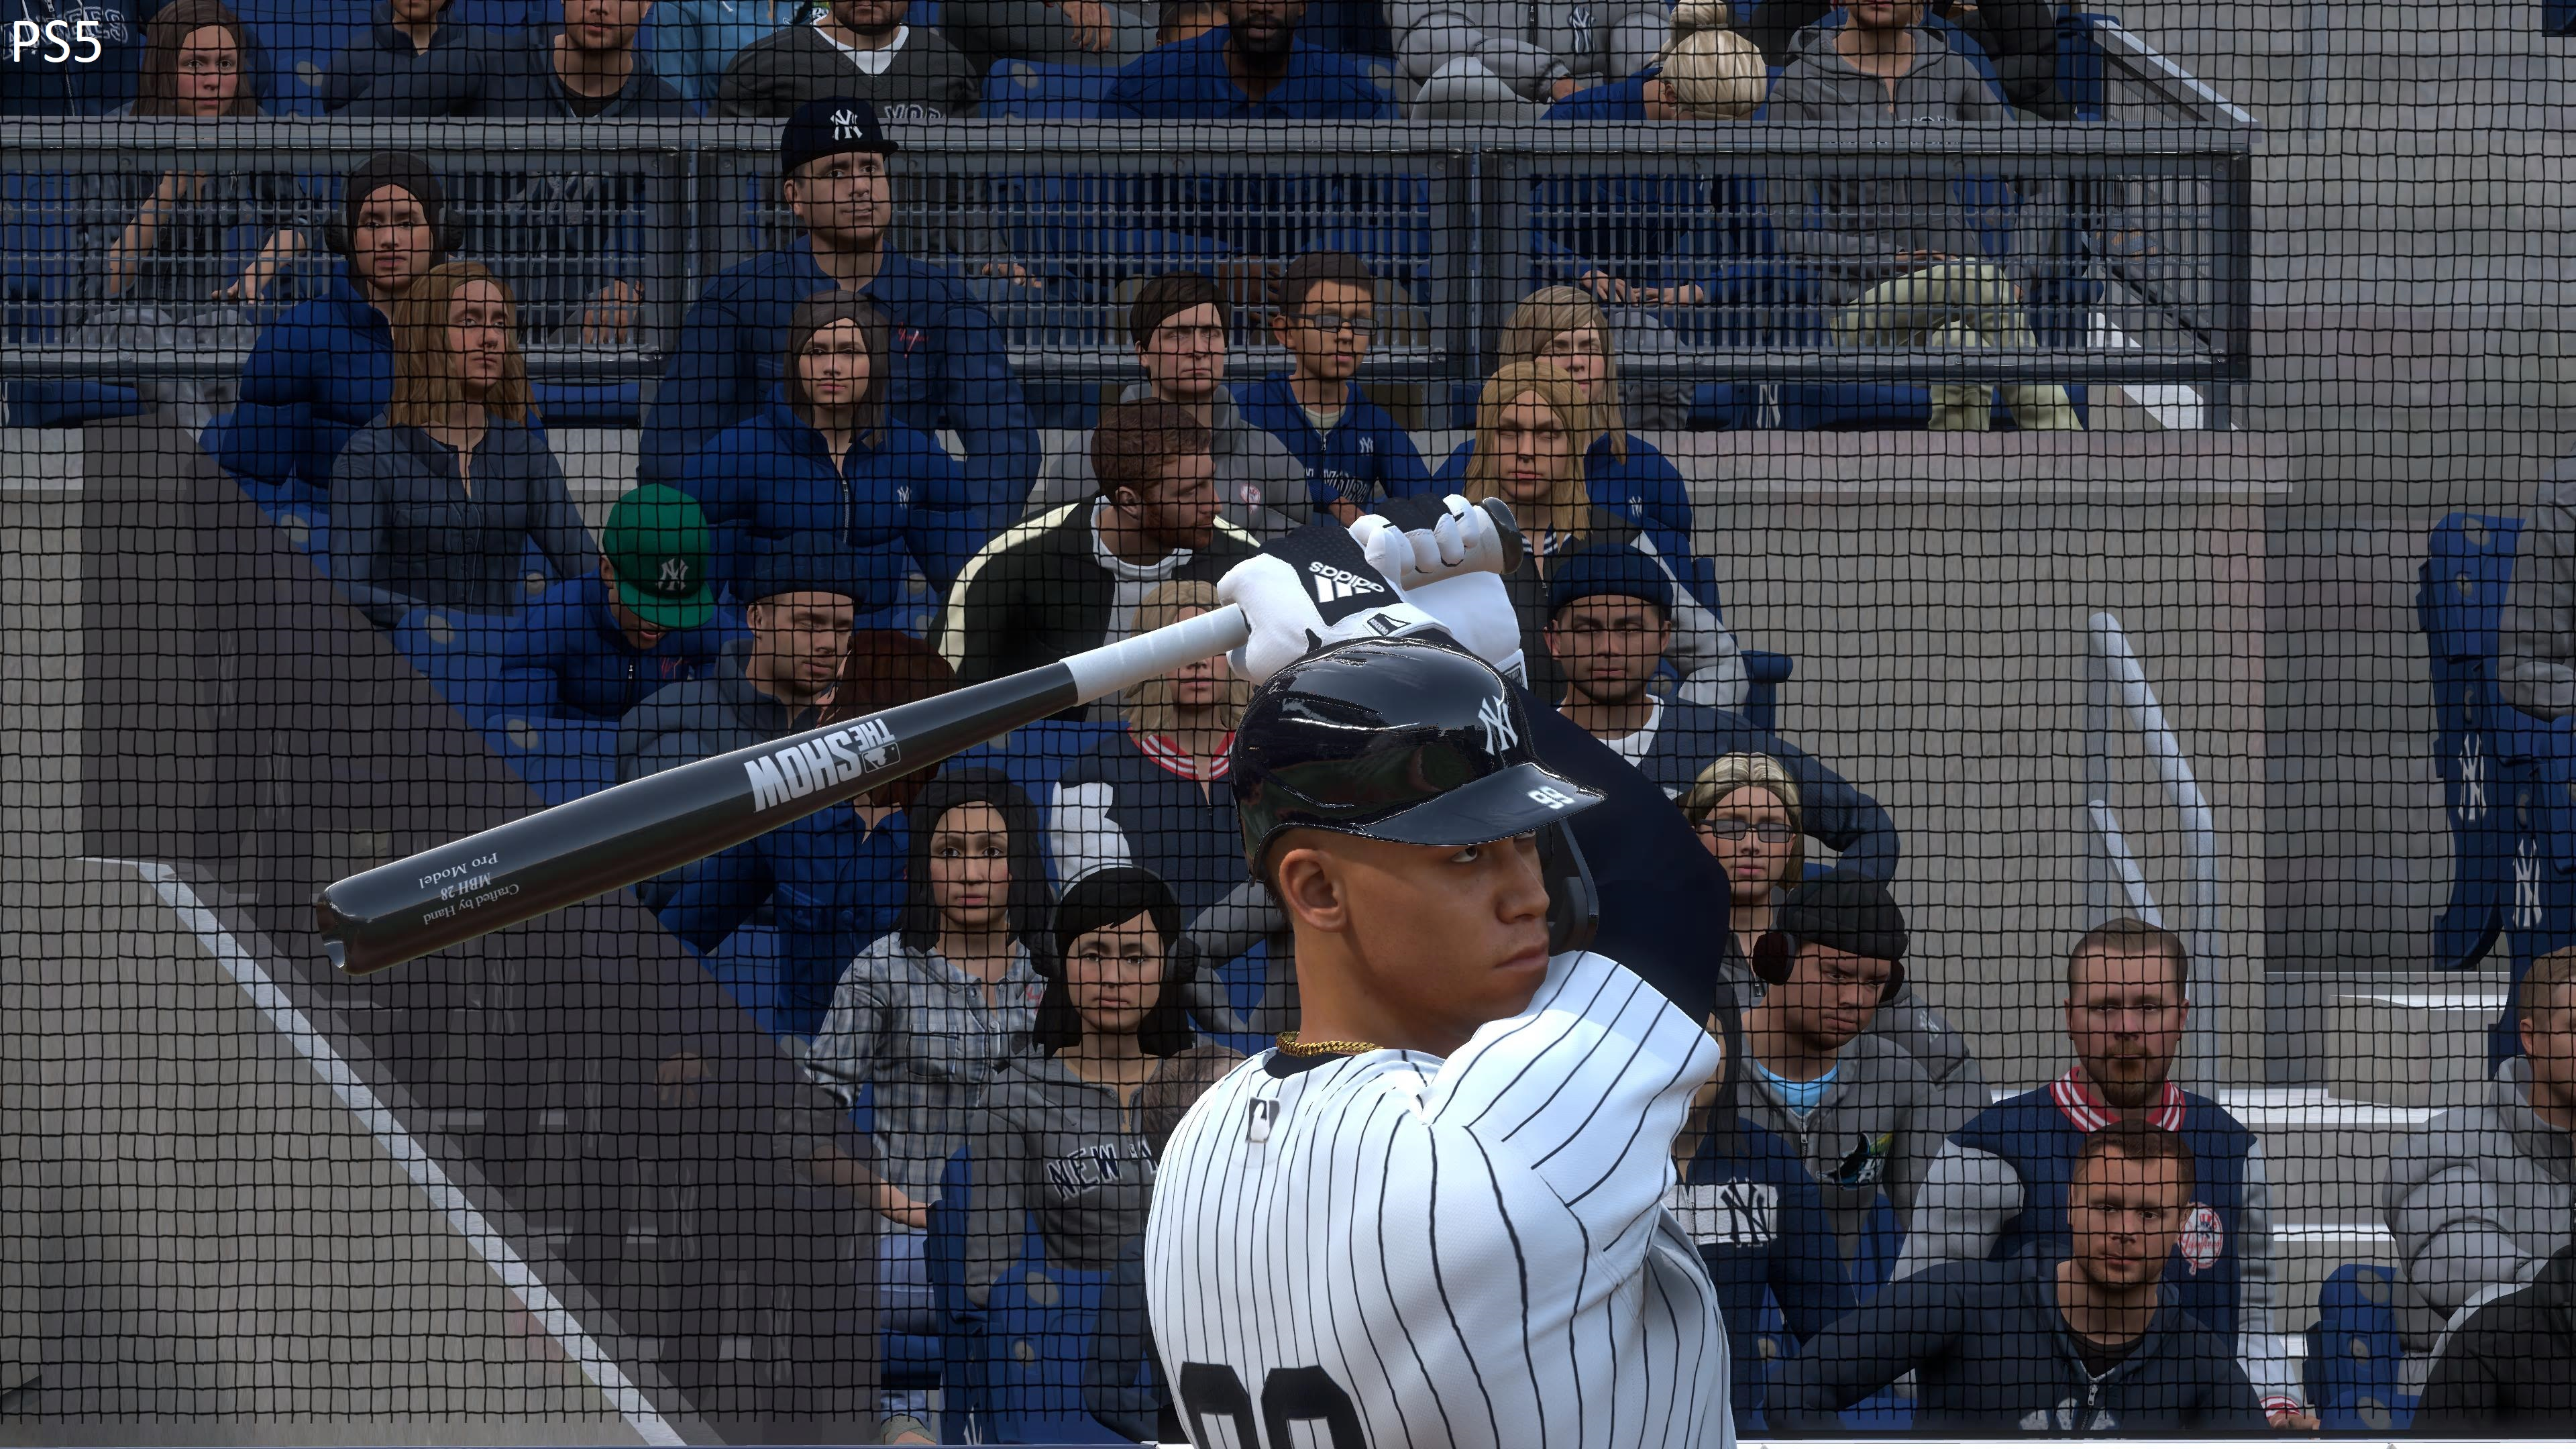 PS5 Judge MLB® The Show™ 21_20210416171057